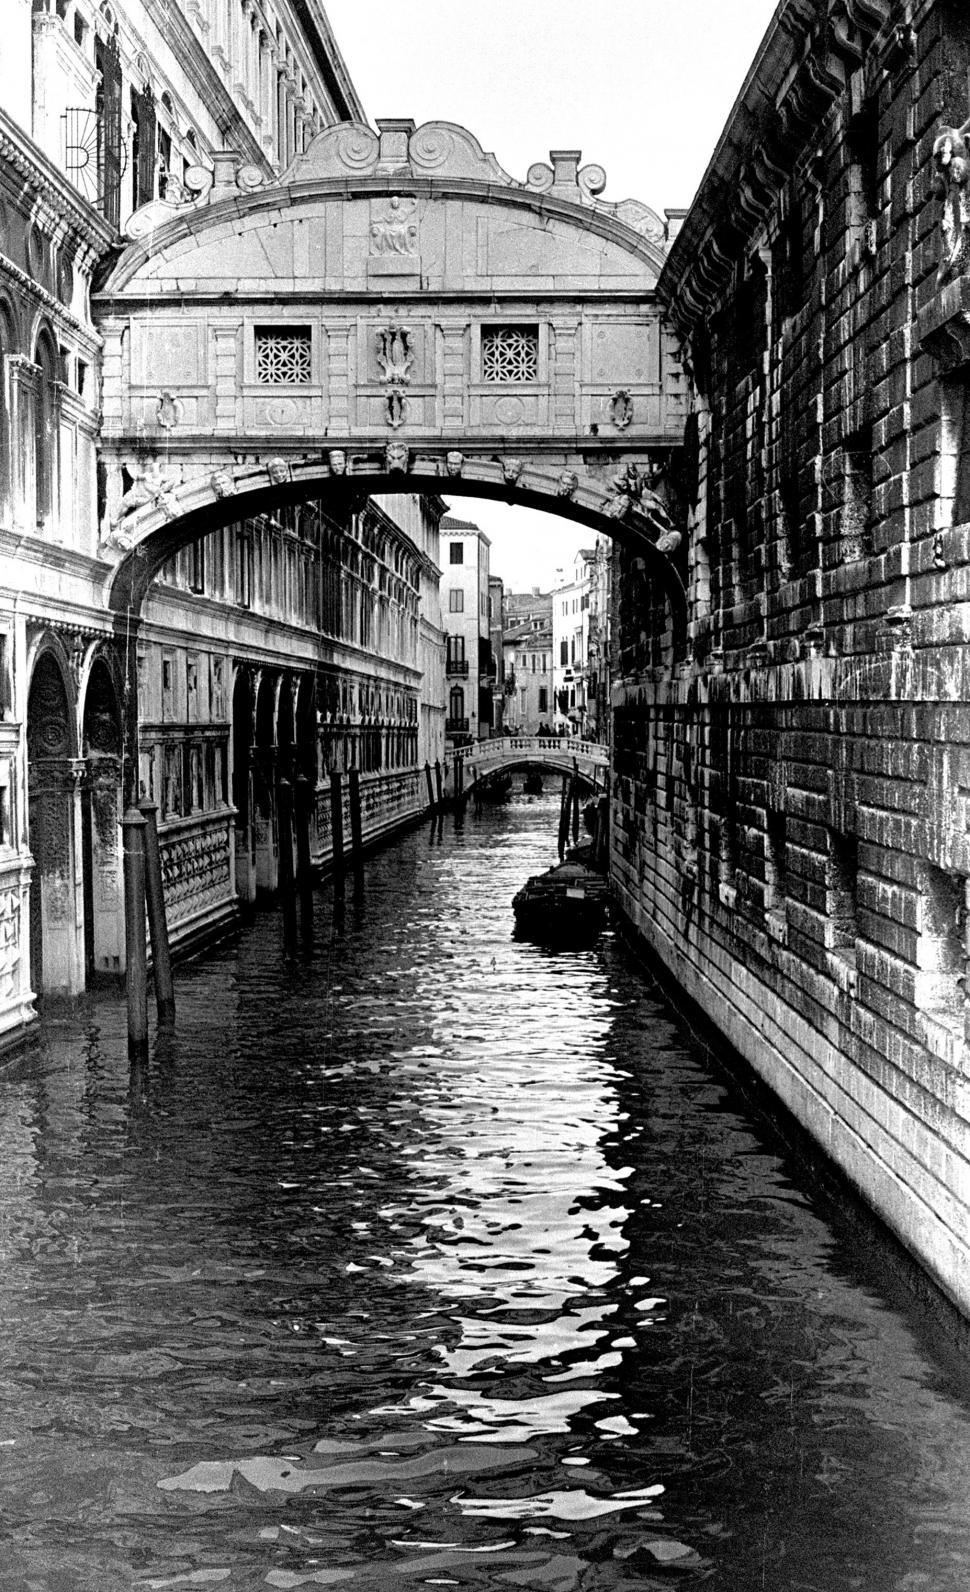 Download Free Stock HD Photo of Scenes from Venice, Italy Online